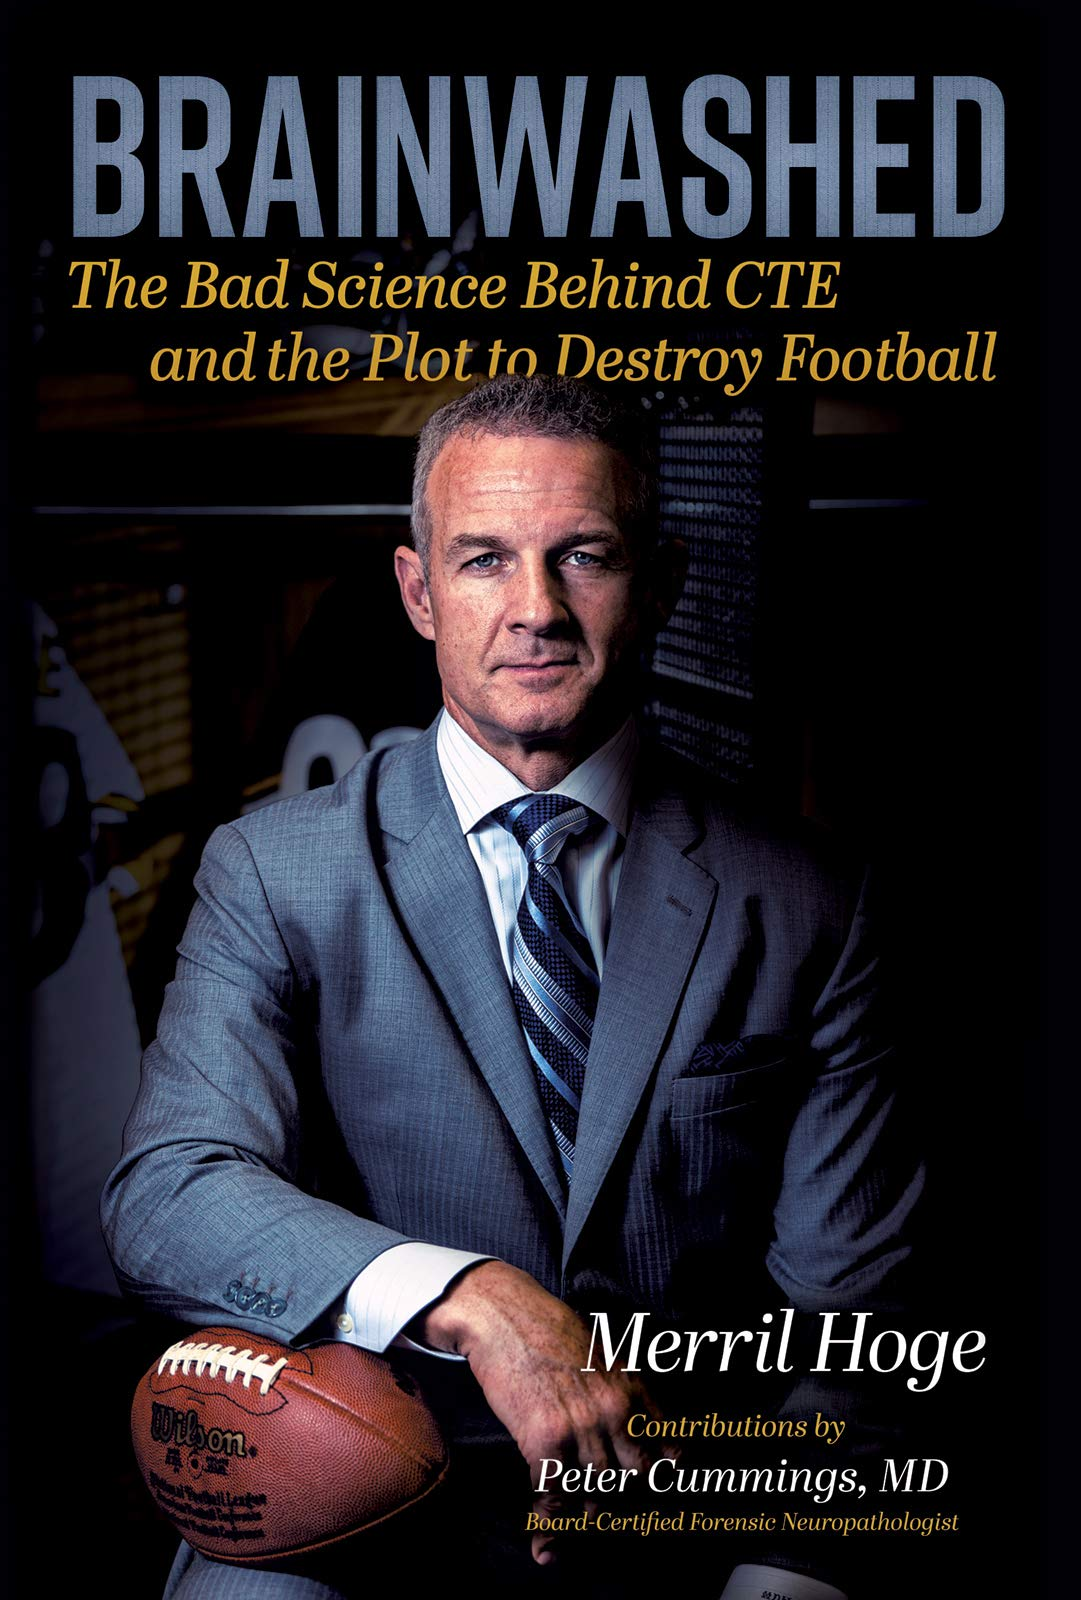 Amazon.com: Brainwashed: The Bad Science Behind CTE and the Plot to Destroy  Football (9781684018659): Merril Hoge: Books